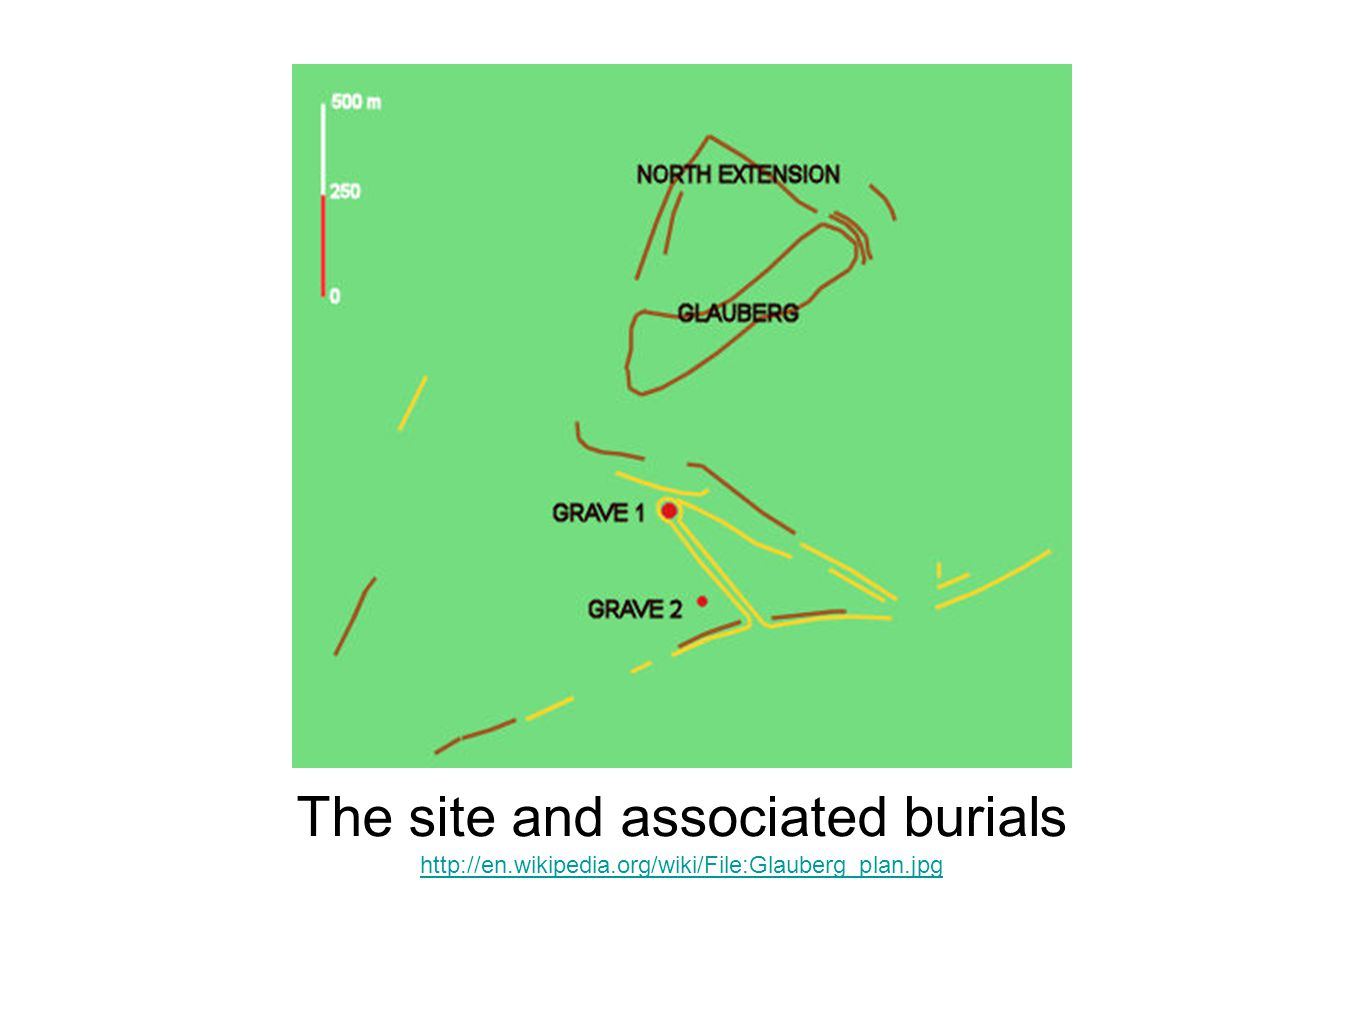 The site and associated burials http://en.wikipedia.org/wiki/File:Glauberg_plan.jpg